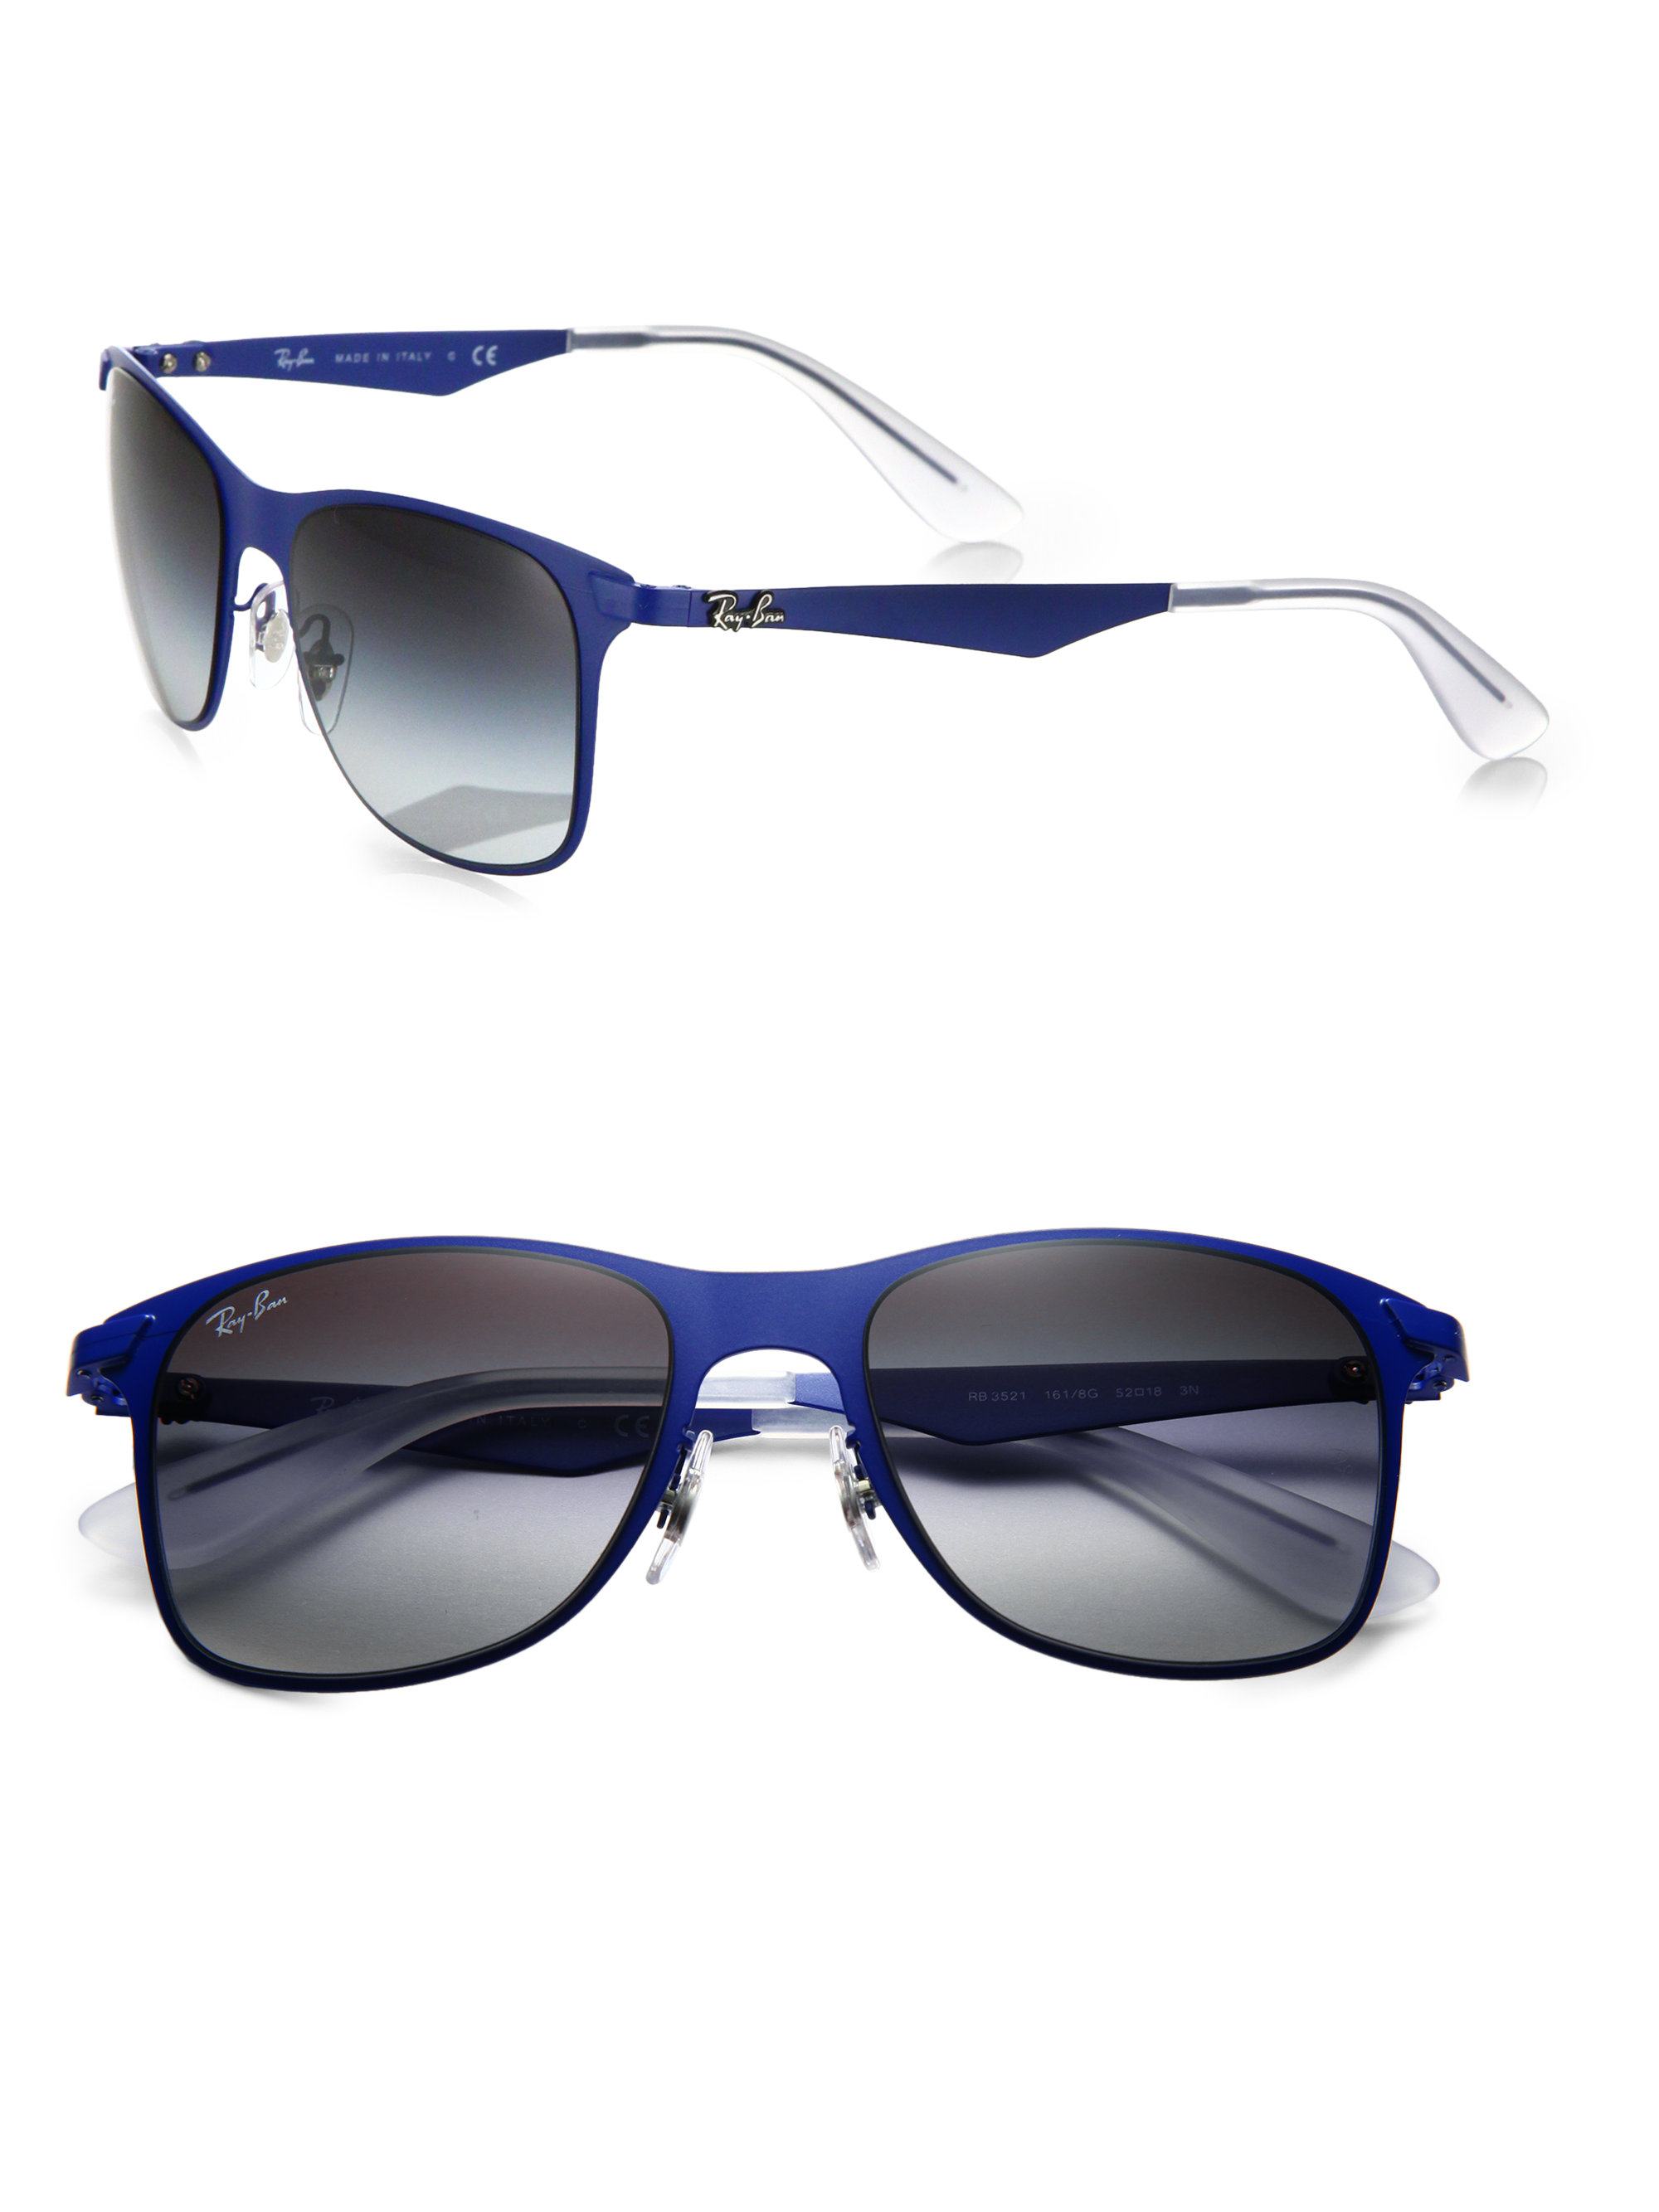 4547450c9f4 ... inexpensive lyst ray ban wayfarer 52mm flat metal sunglasses black in  blue for men e05fc ba0d8